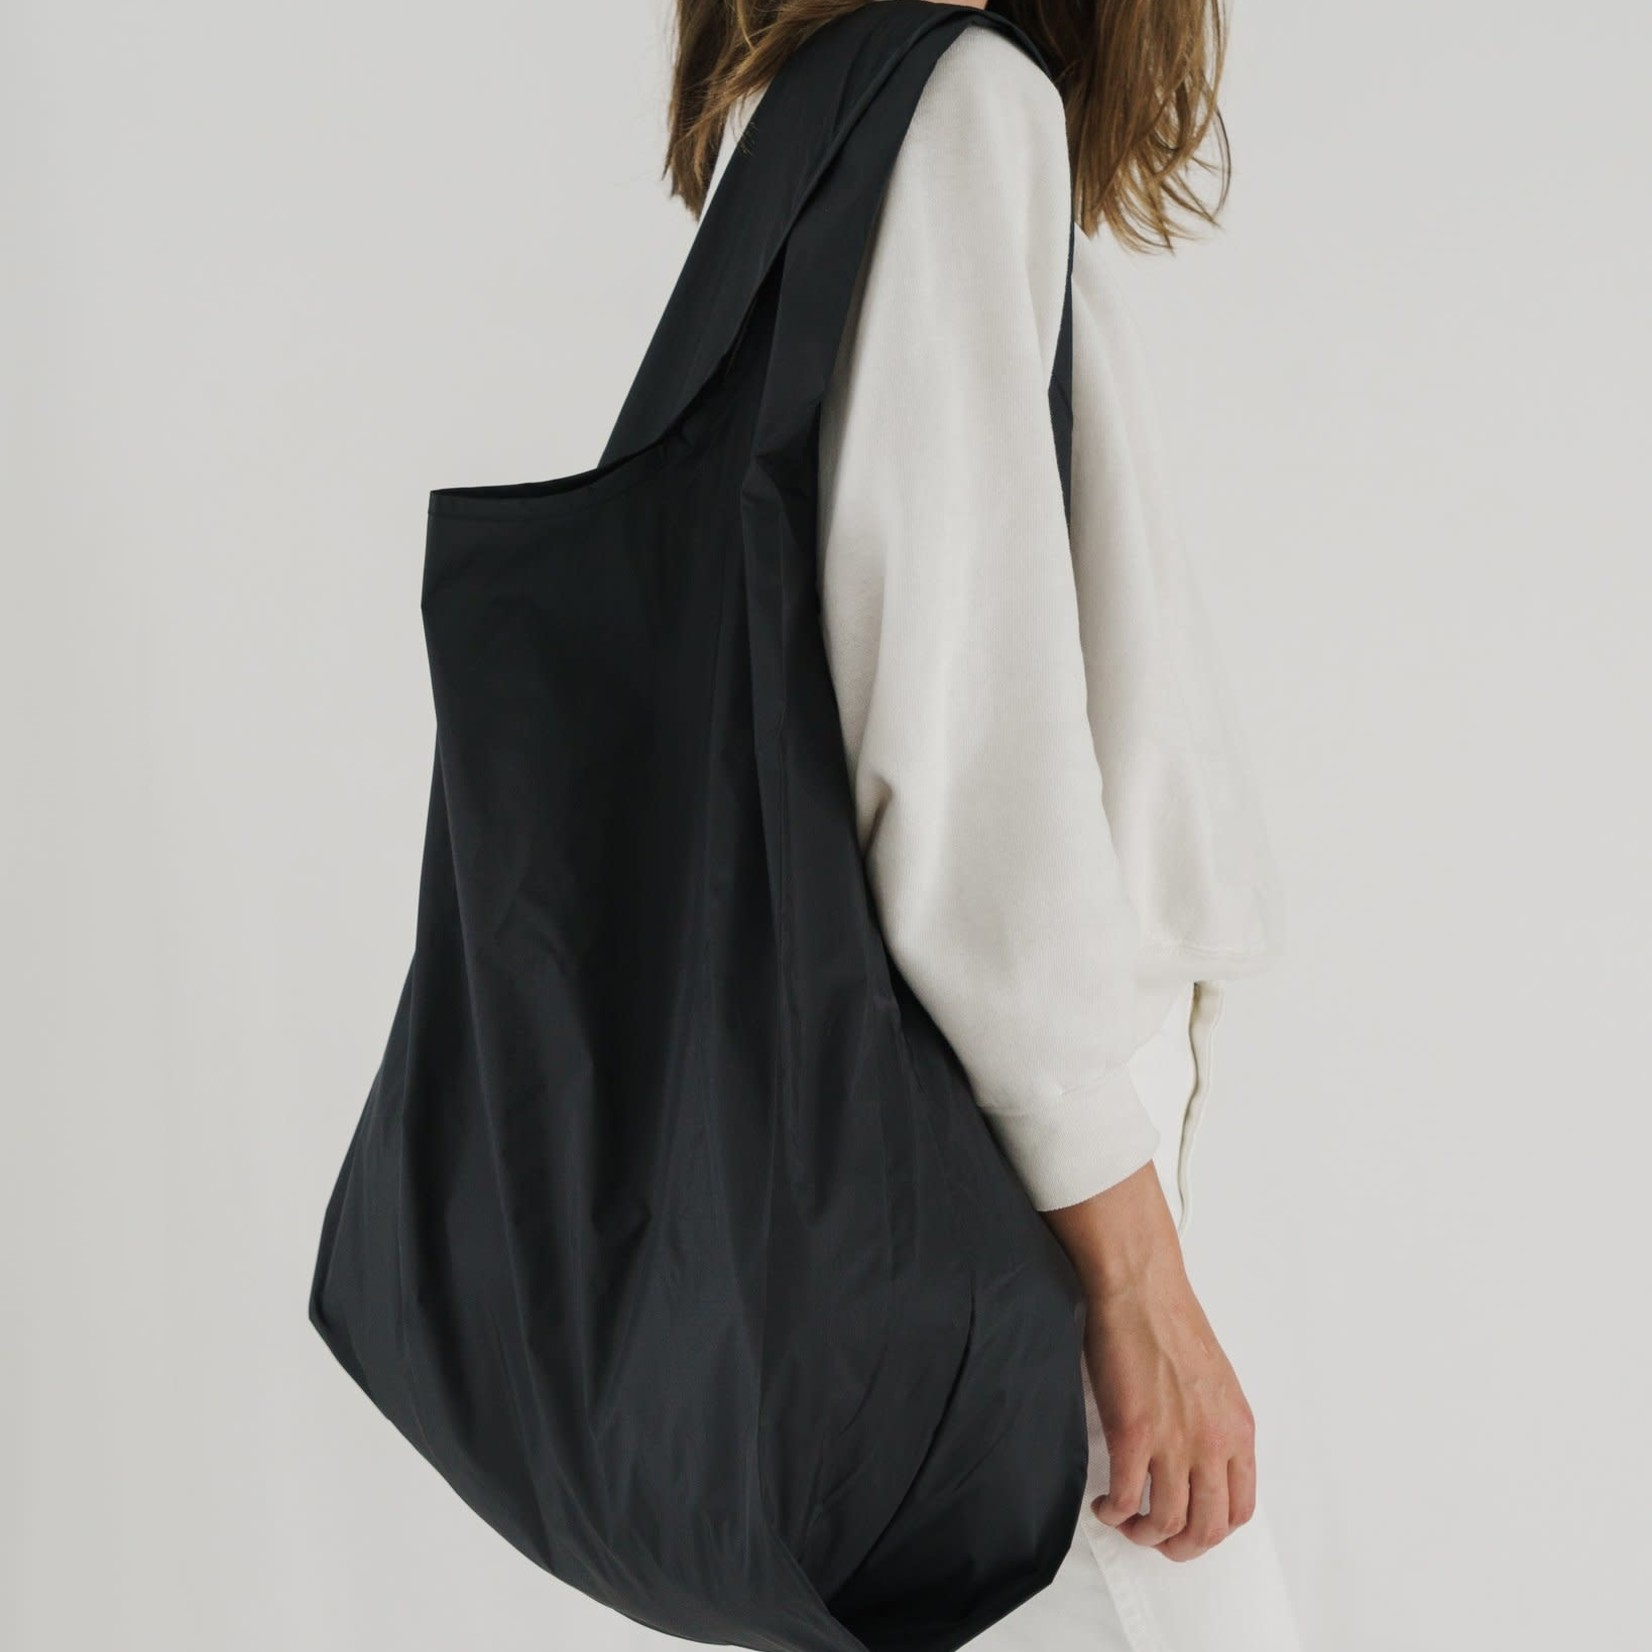 Baggu Baggu Reusable Bag Big Black